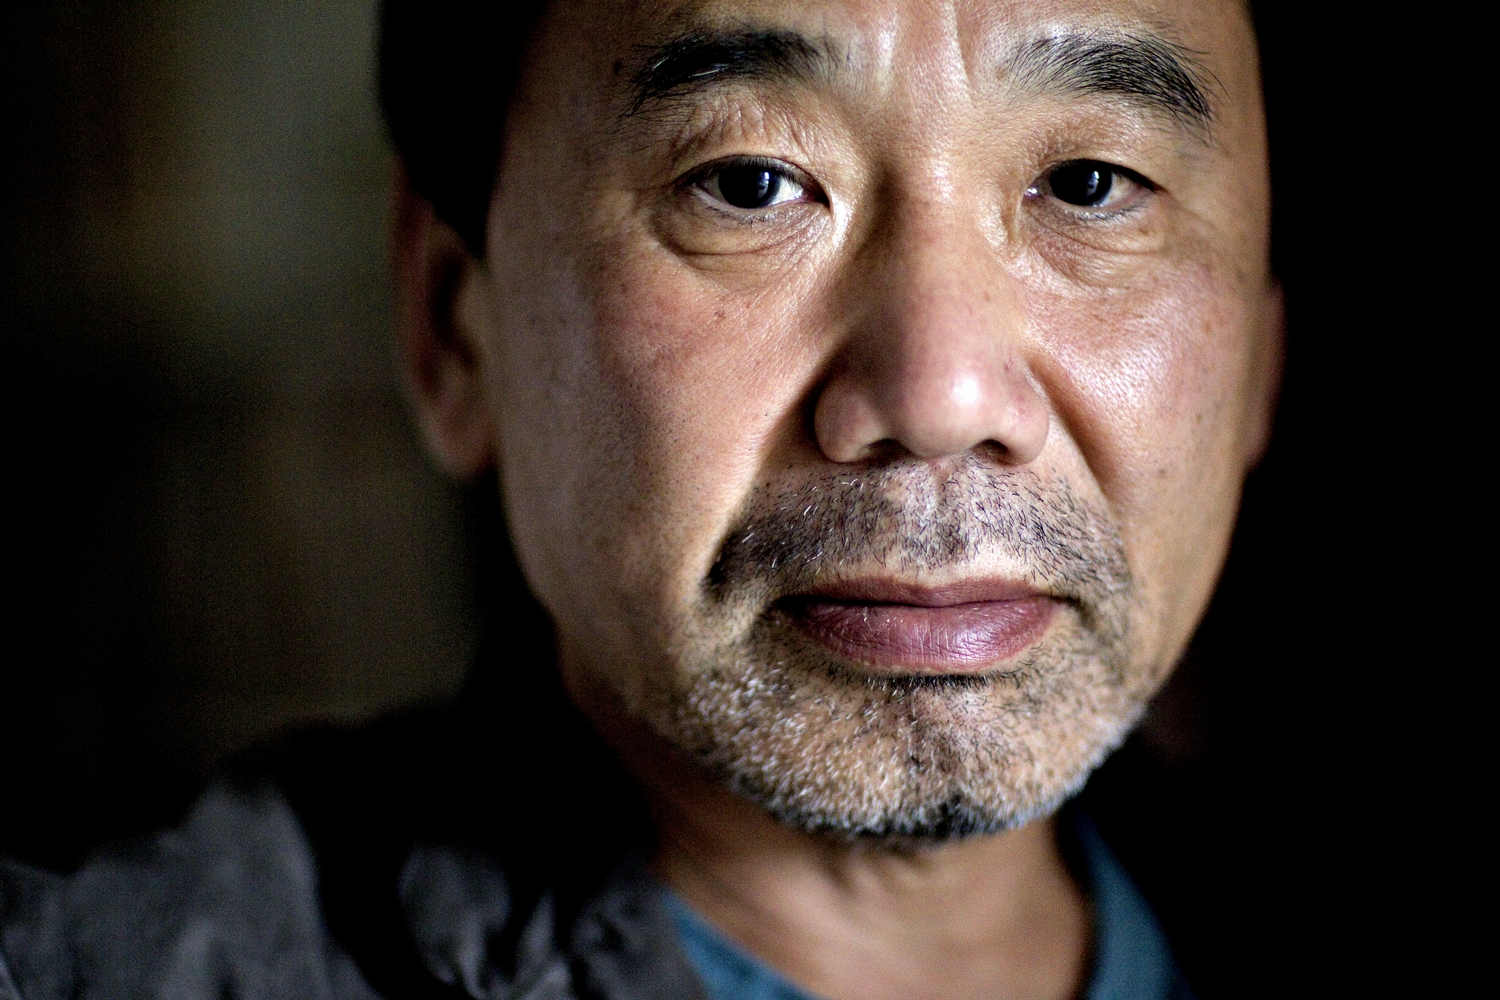 haruki murakami essays Tony takitani a short story by haruki murakami published in new yorker magazine issue of 2002-04-15 tony takitani's real name was really that: tony takitani.